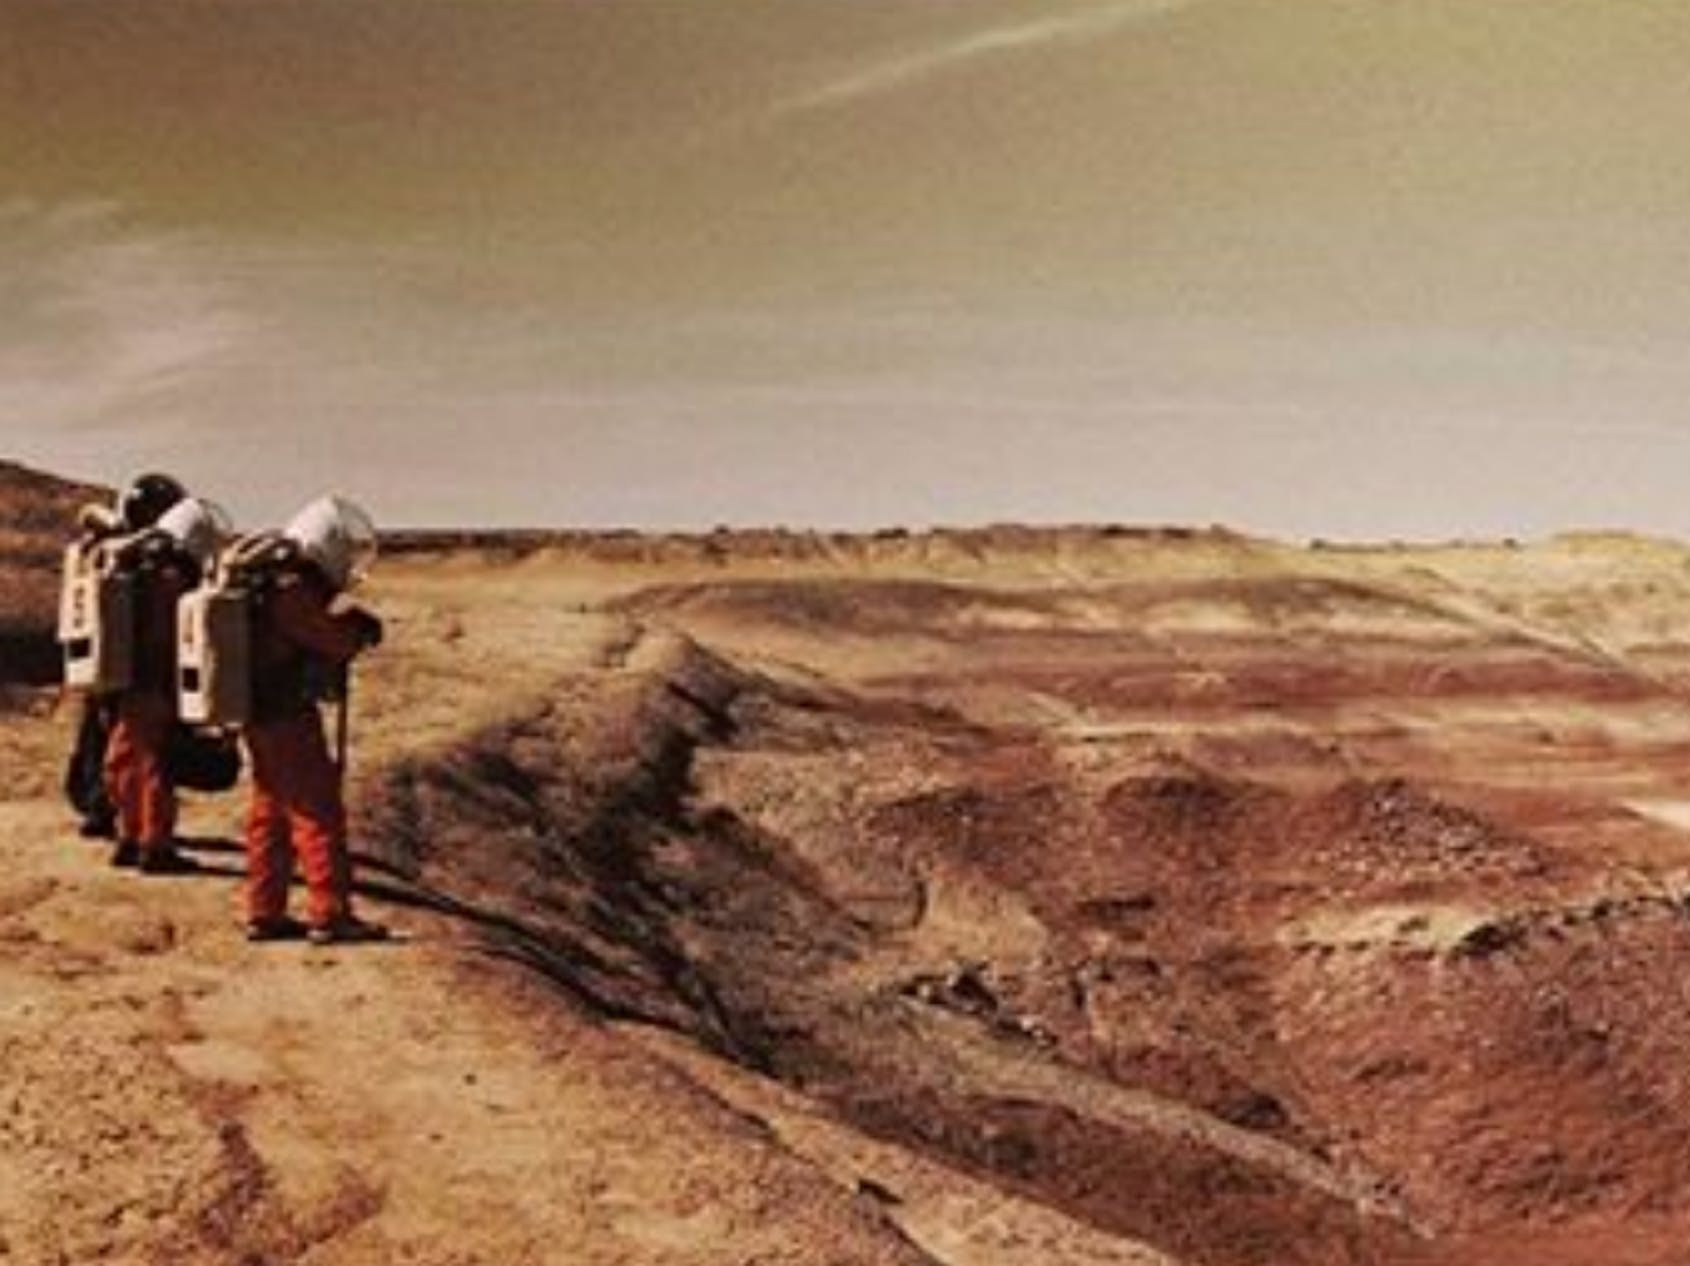 Mars One promotional material